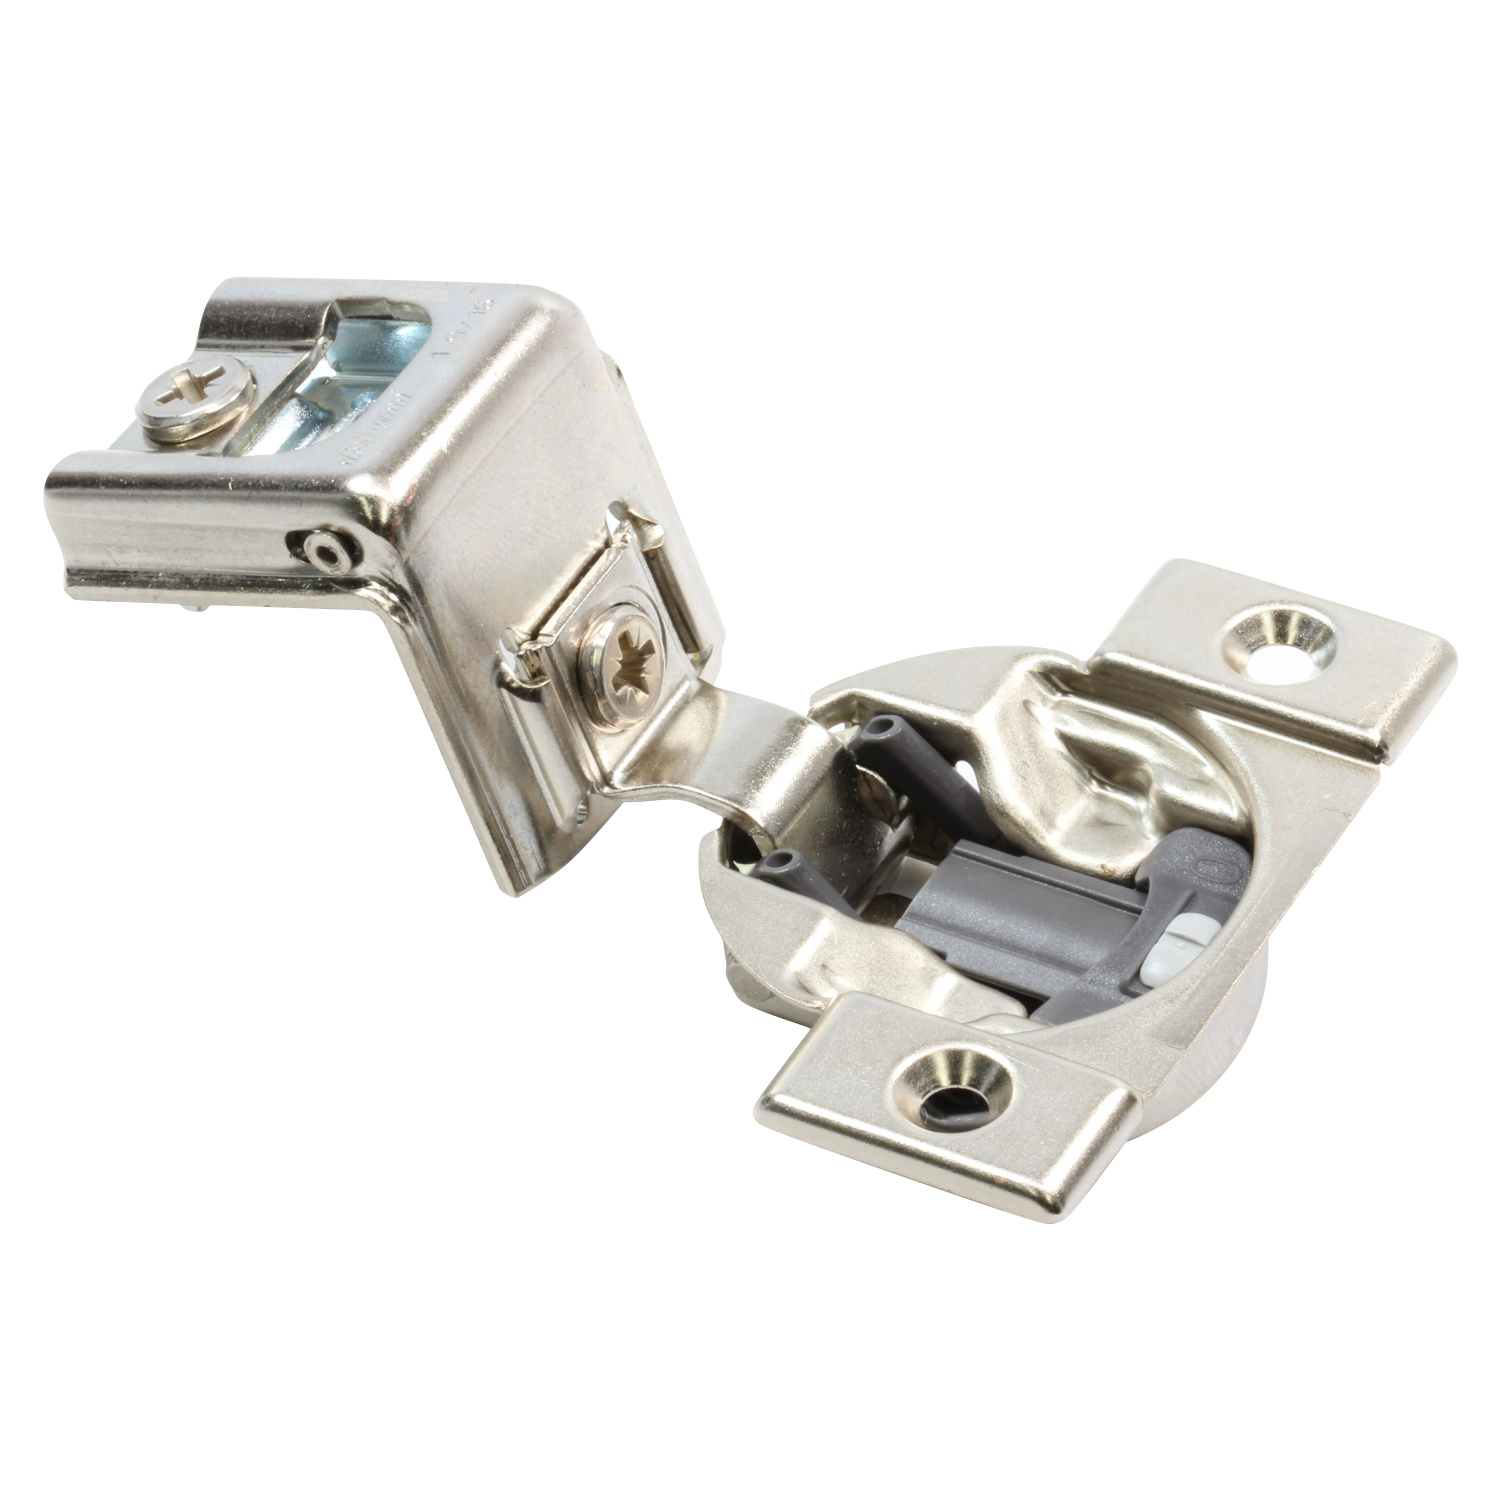 Blum 39 C Cabinet Hinges Compact 1 Inch Overlay Self Close Screw on 39C355C.16